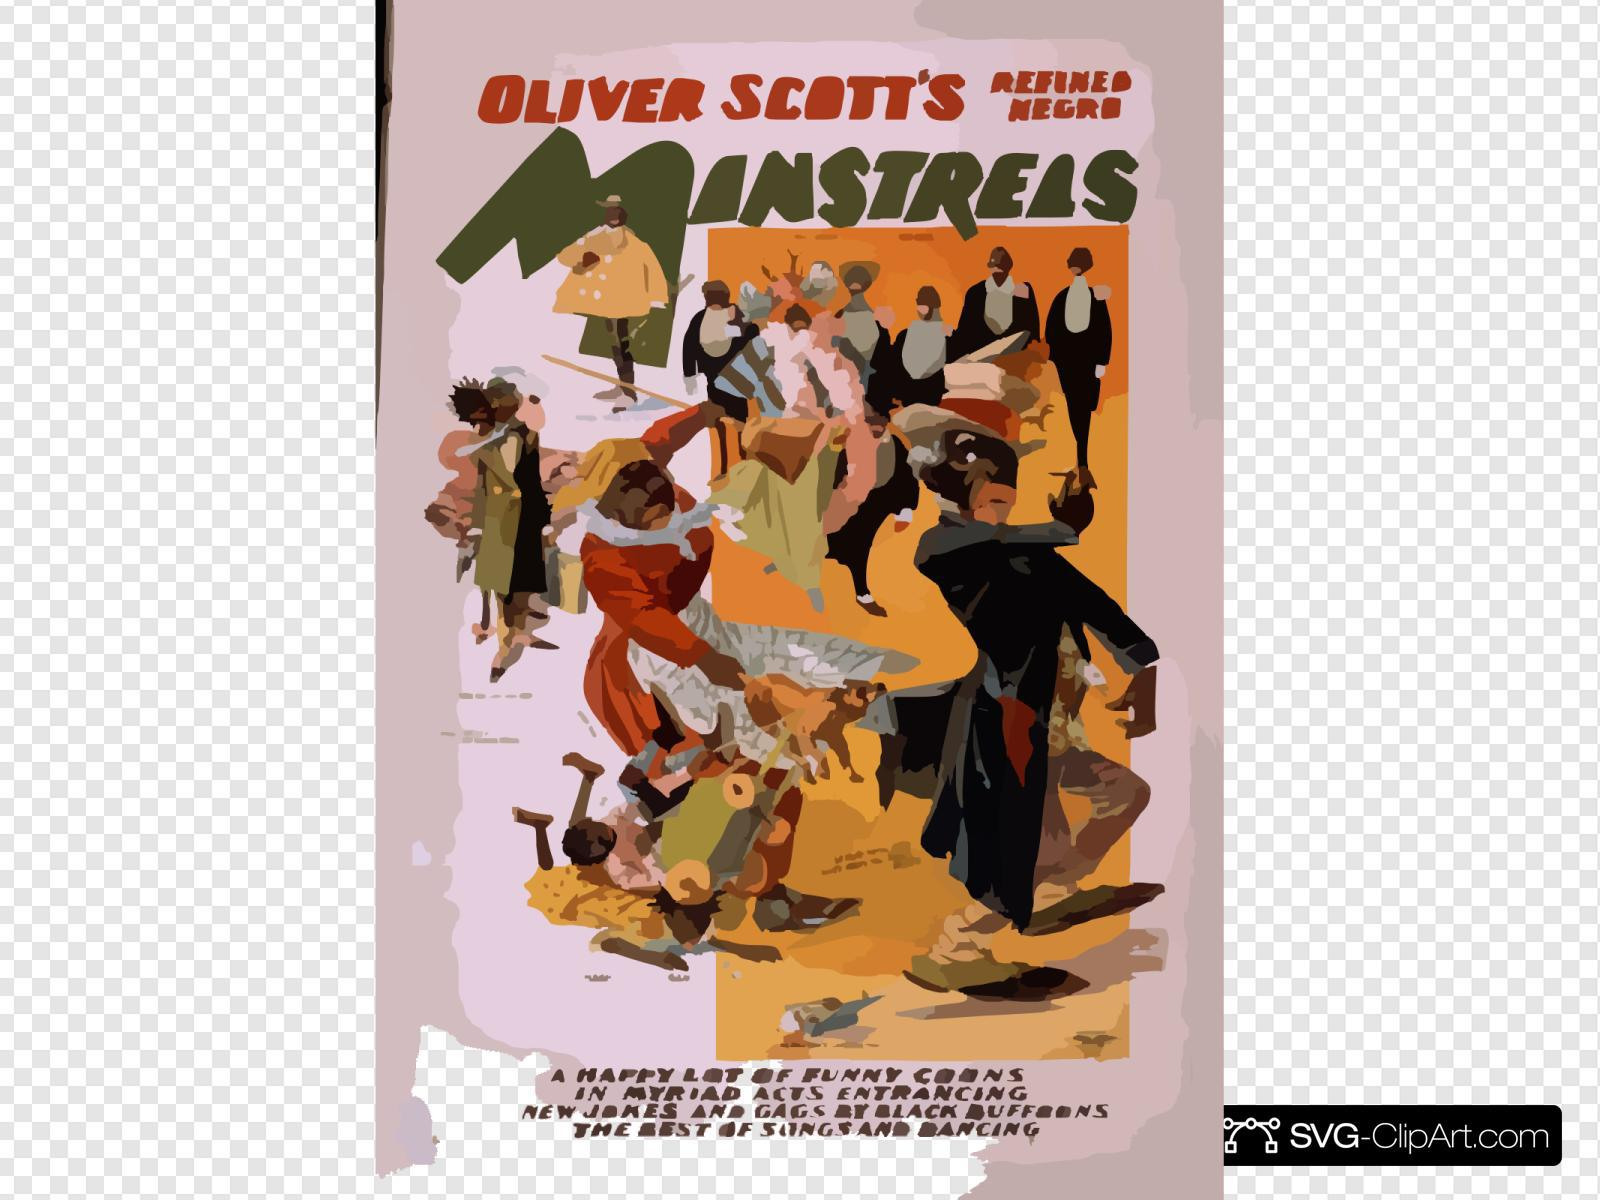 Oliver Scott S Refined Negro Minstrels A Happy Lot Of Funny Coons In Myriad Acts Entrancing, New Jokes And Gags By Black Buffoons, The Best Of Songs And Dancing.